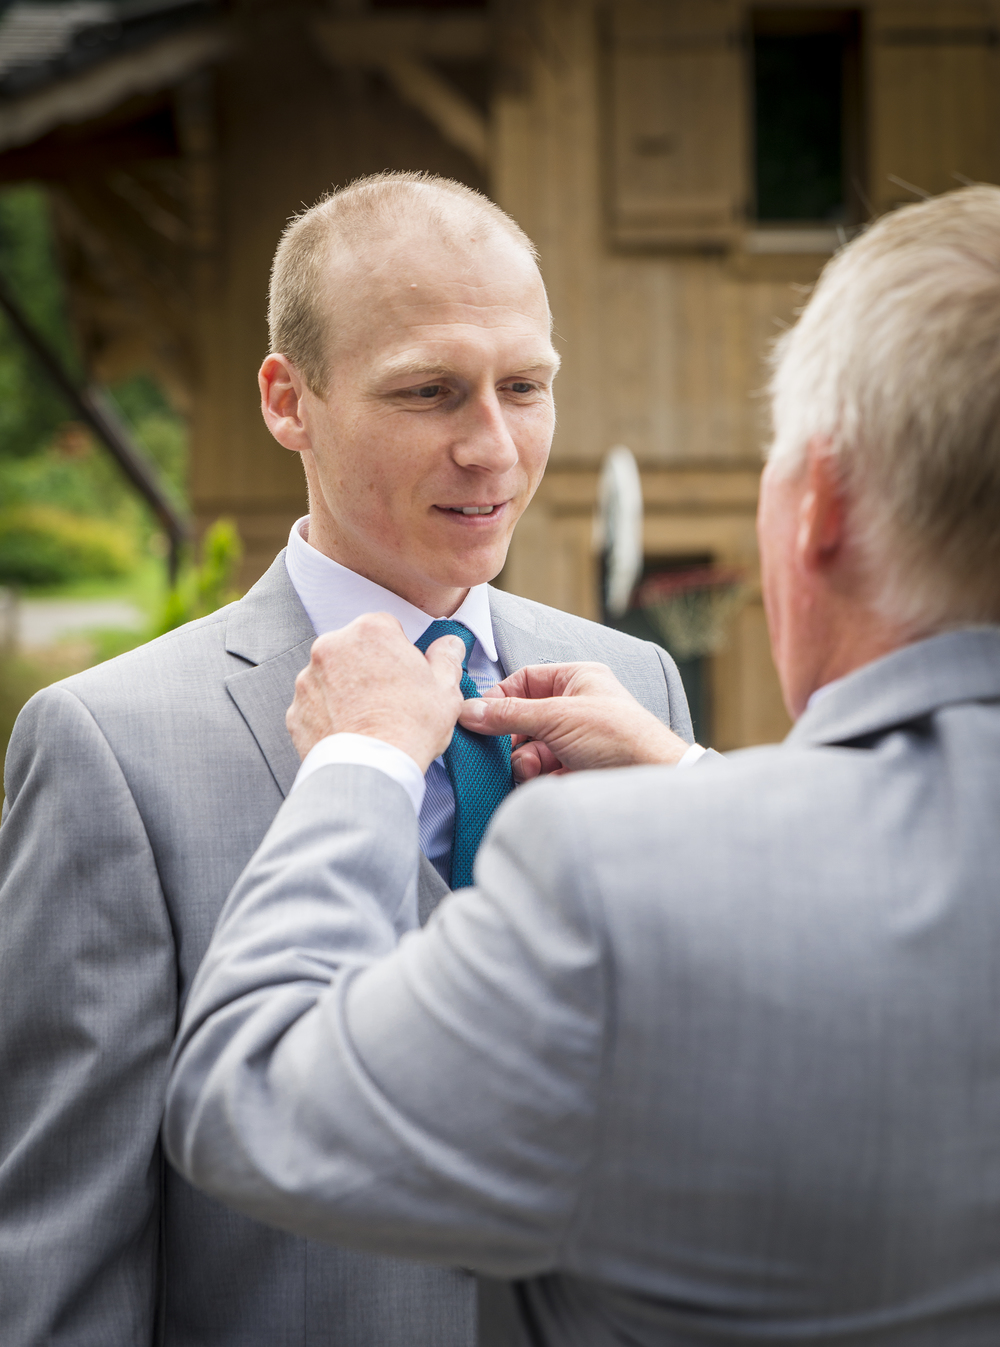 Father of the groom sorting out his sons tie.